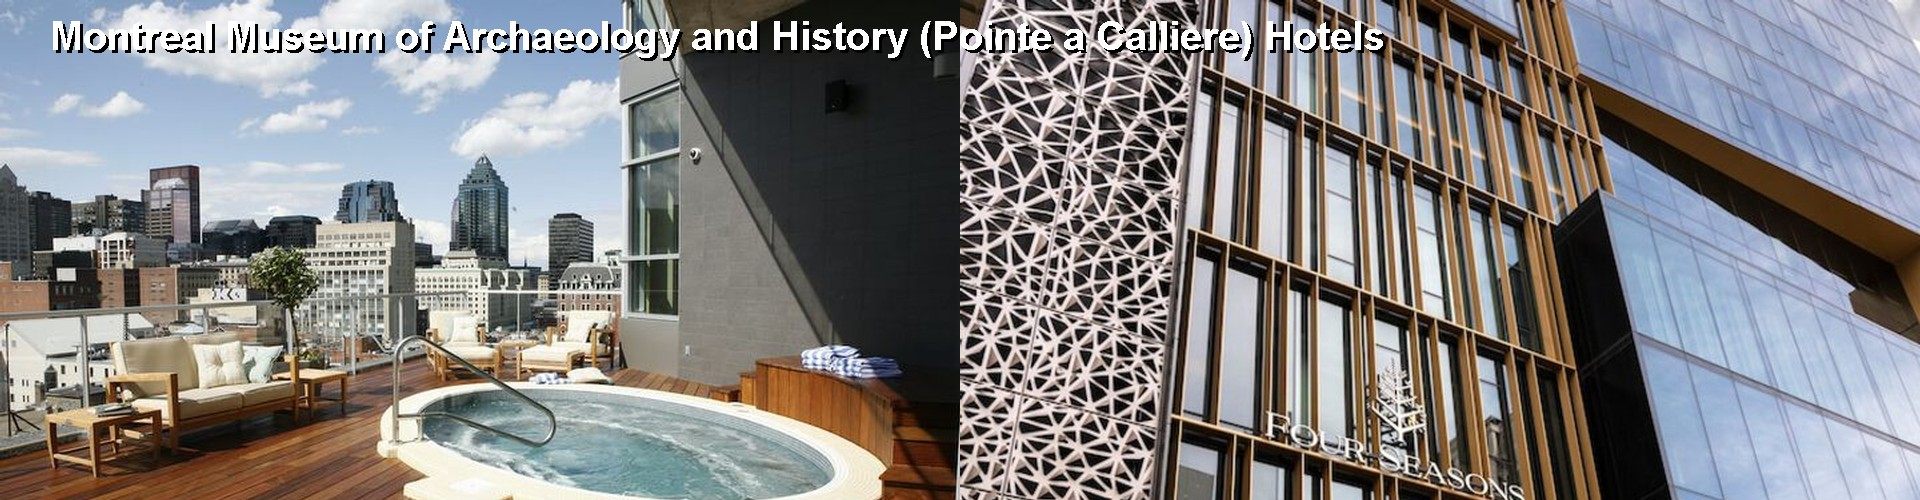 5 Best Hotels near Montreal Museum of Archaeology and History (Pointe a Calliere)